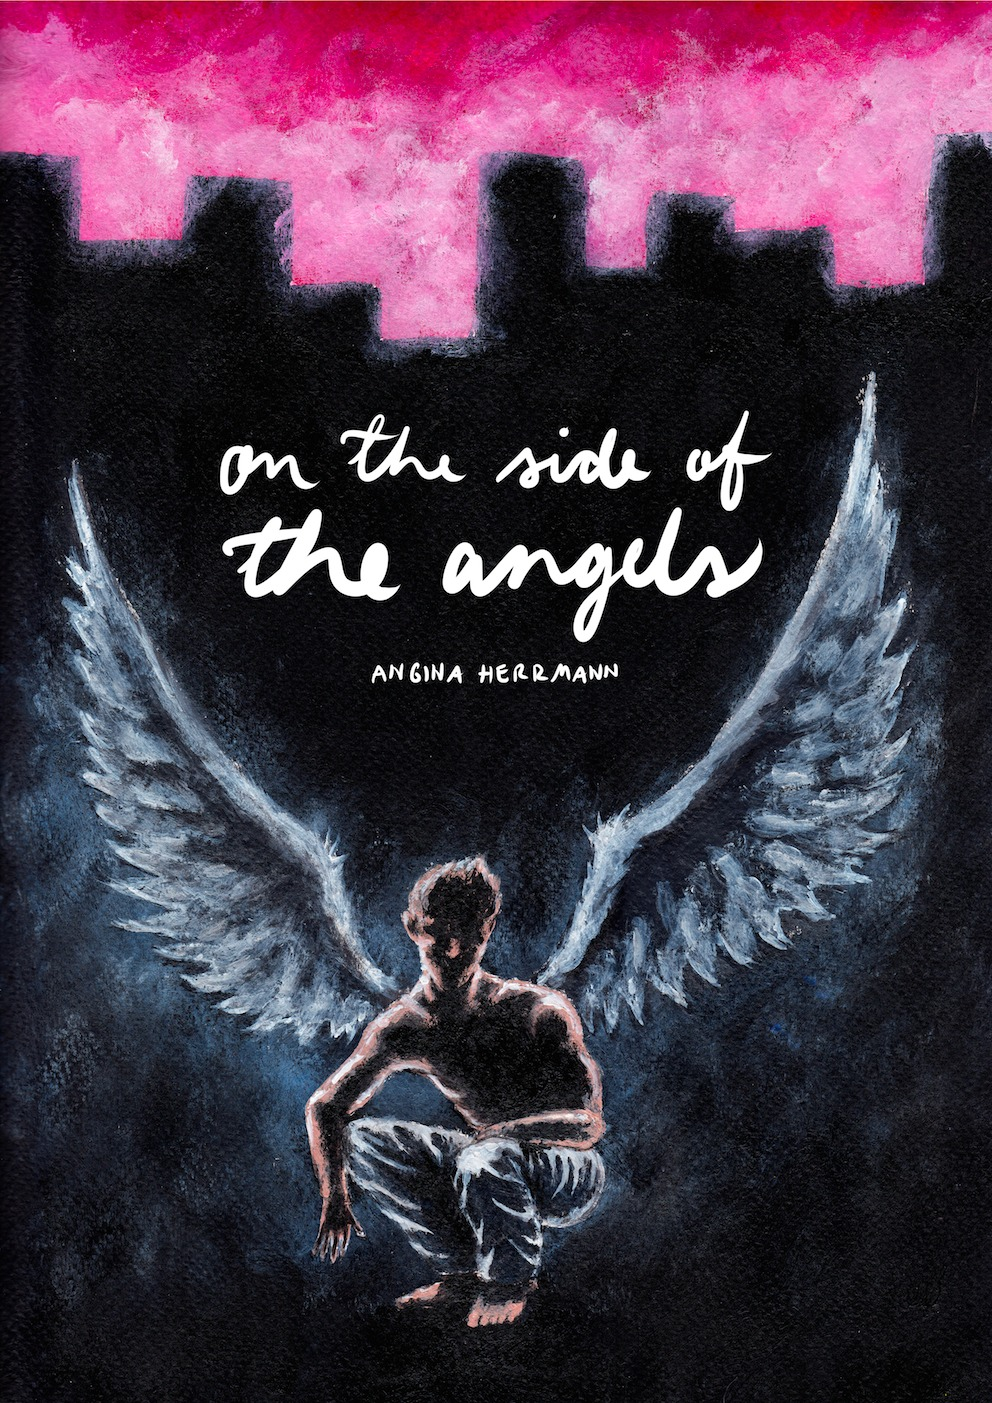 Graphic Novel - On the Side of the Angels